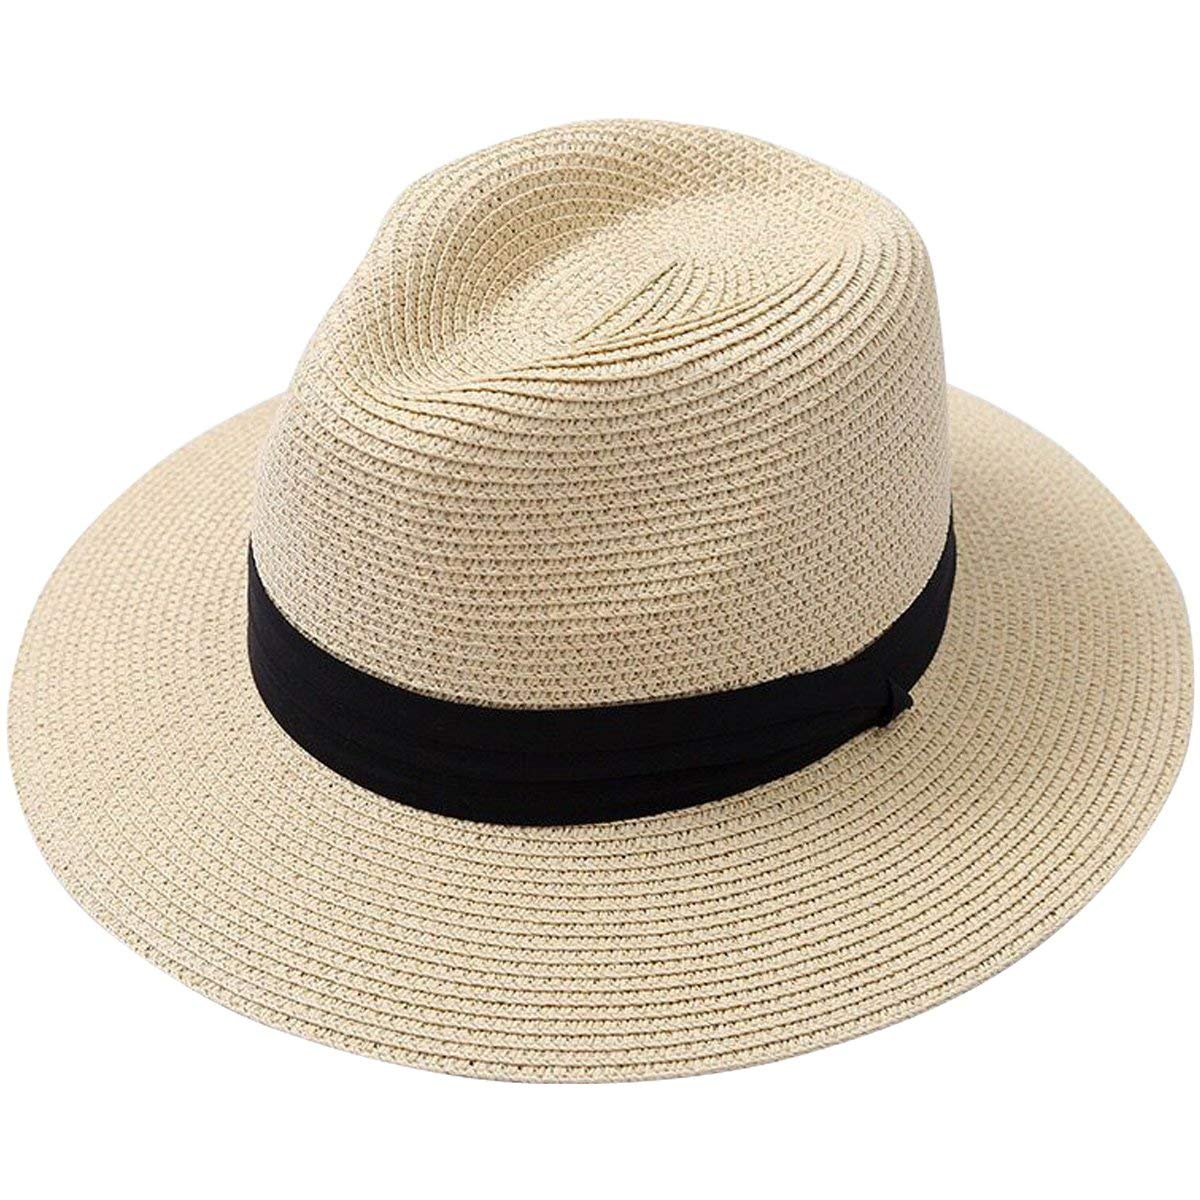 Qchomee UPF 50 Sun Hat,Unisex Wide Brim Bucket Hat Breathable Sun UV Protection Beach Hat Safari Boonie Hat Camping Fishing Hat with Chin Strap